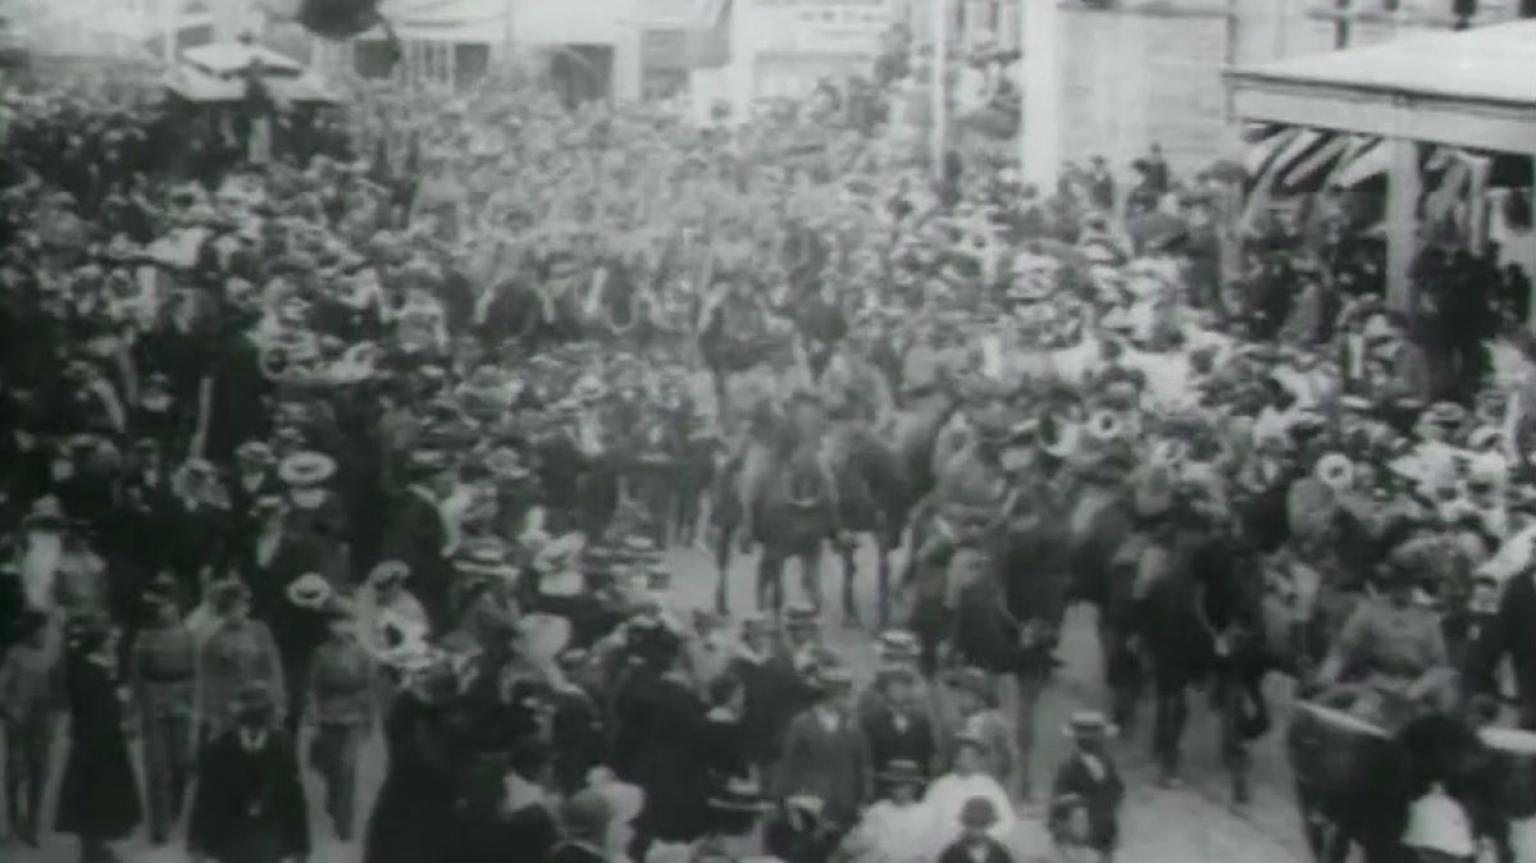 Crowds in Queen Street, Brisbane, watch the First Queensland Cavalry Contingent parade before it departs for the Boer War in South Africa.